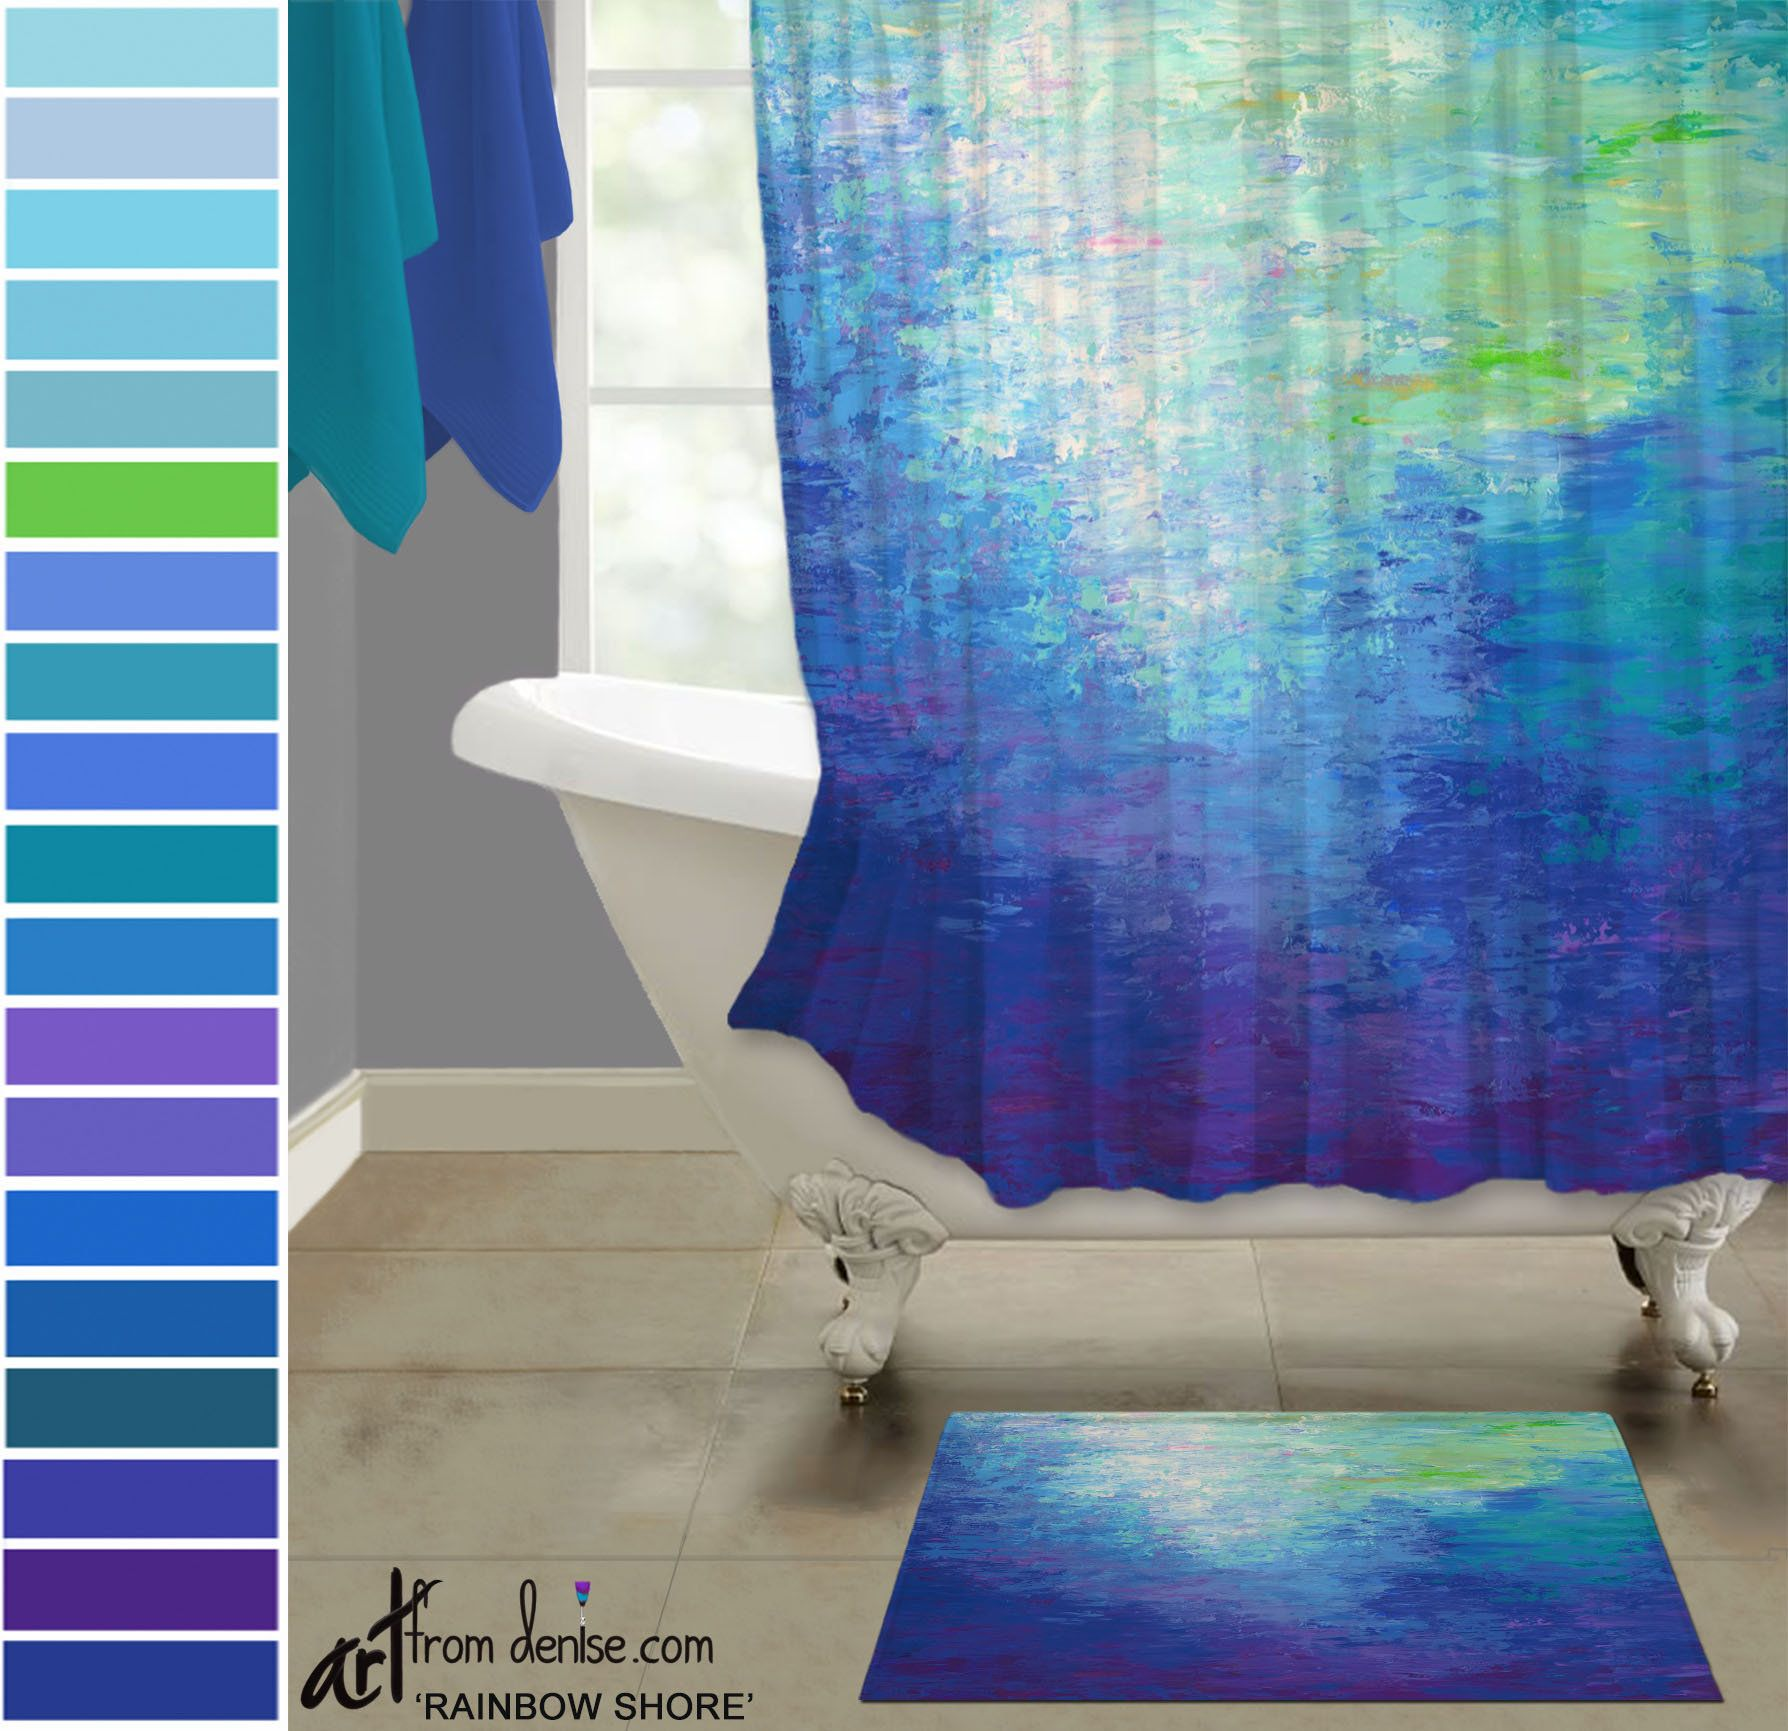 Colorful Shower Curtain And Bath Mat Set Modern Blue Purple Green Abstract Fabric Shower Stall Rug Bathroom Decor In 2021 Colorful Shower Curtain Blue Bathroom Decor Bath Mat Sets [ 1731 x 1788 Pixel ]